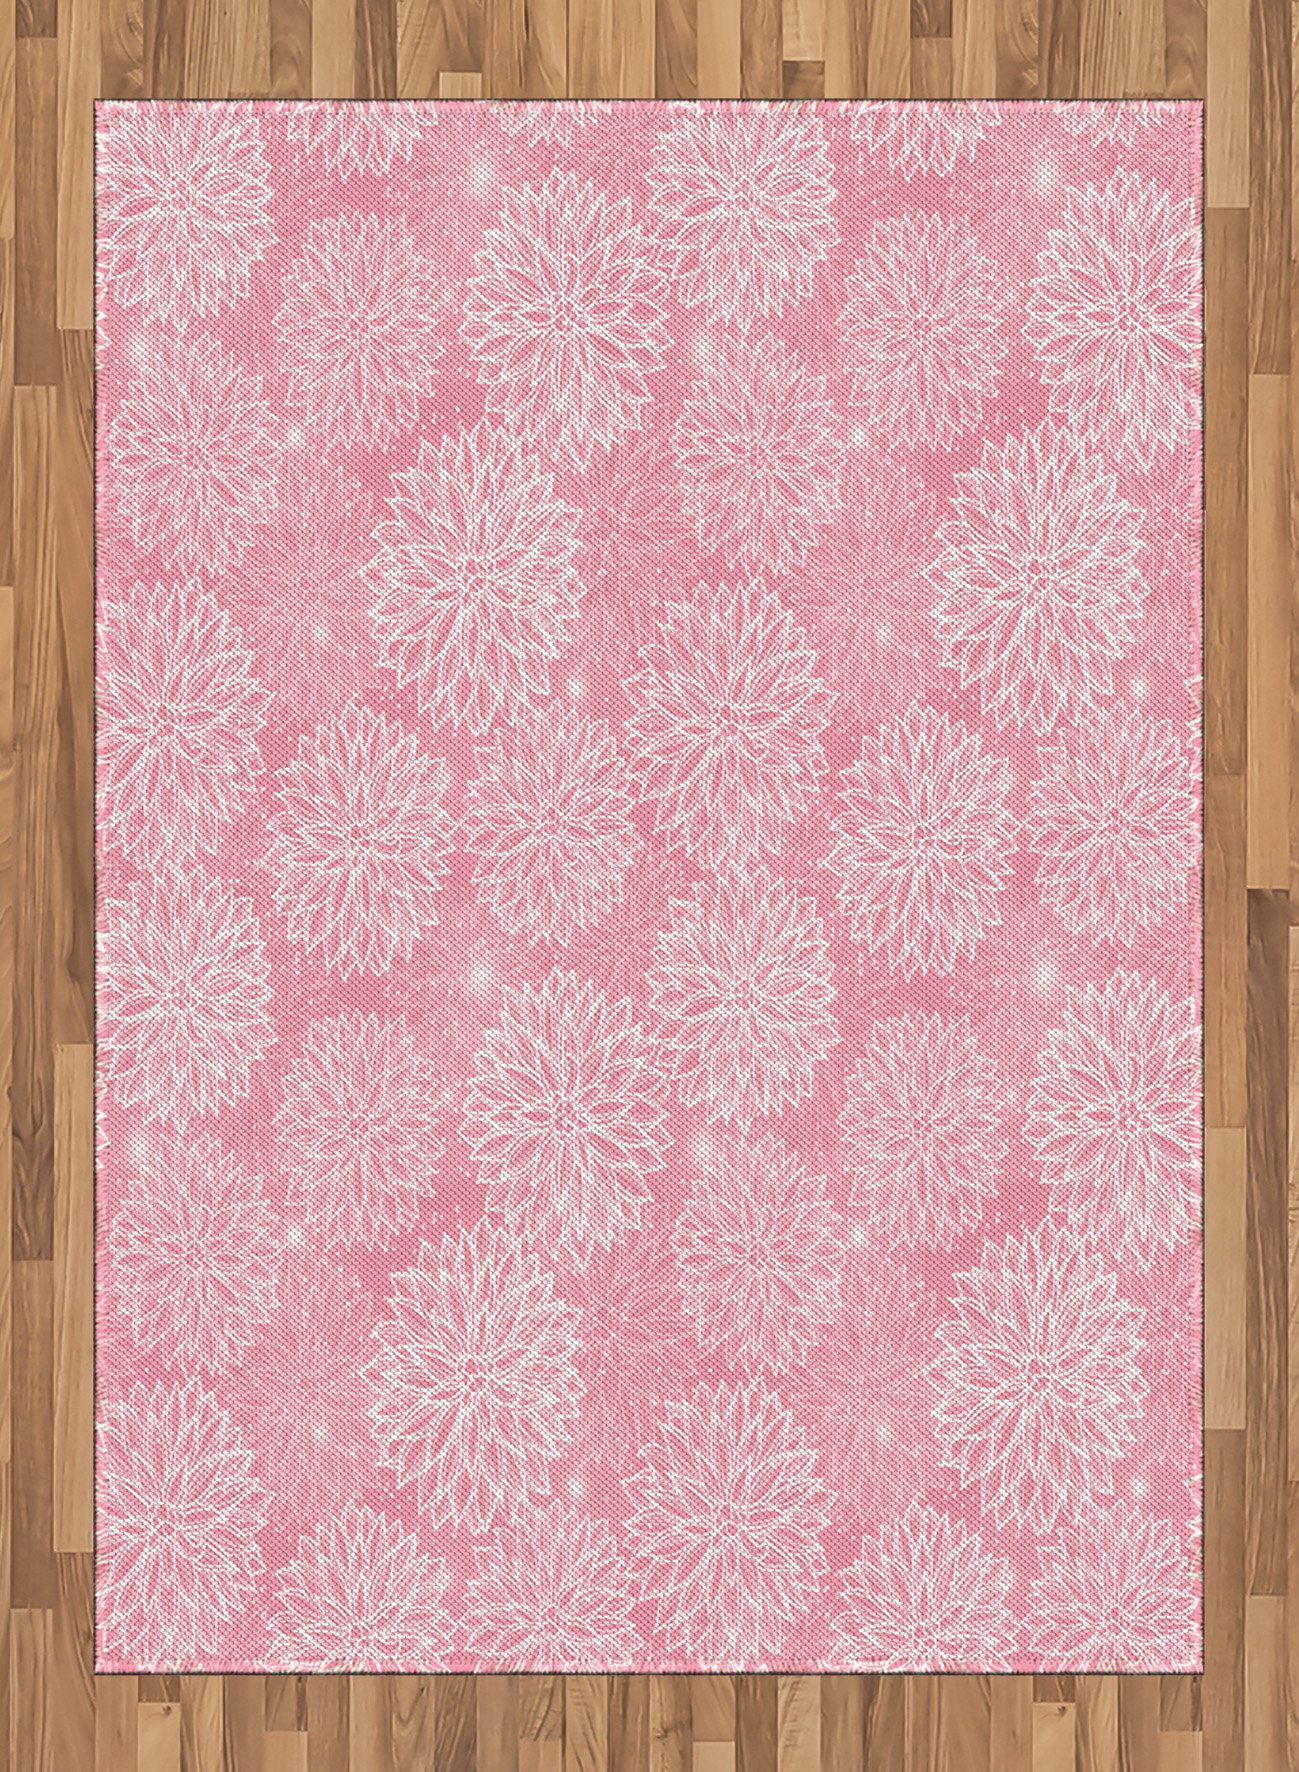 Dahlia Flower Decor Area Rug by Ambesonne, Cute Alluring Forms with Spots on Backdrop Love Valentines Concept, Flat Woven Accent Rug for Living Room Bedroom Dining Room, 5.2 x 7.5 FT, Pink White